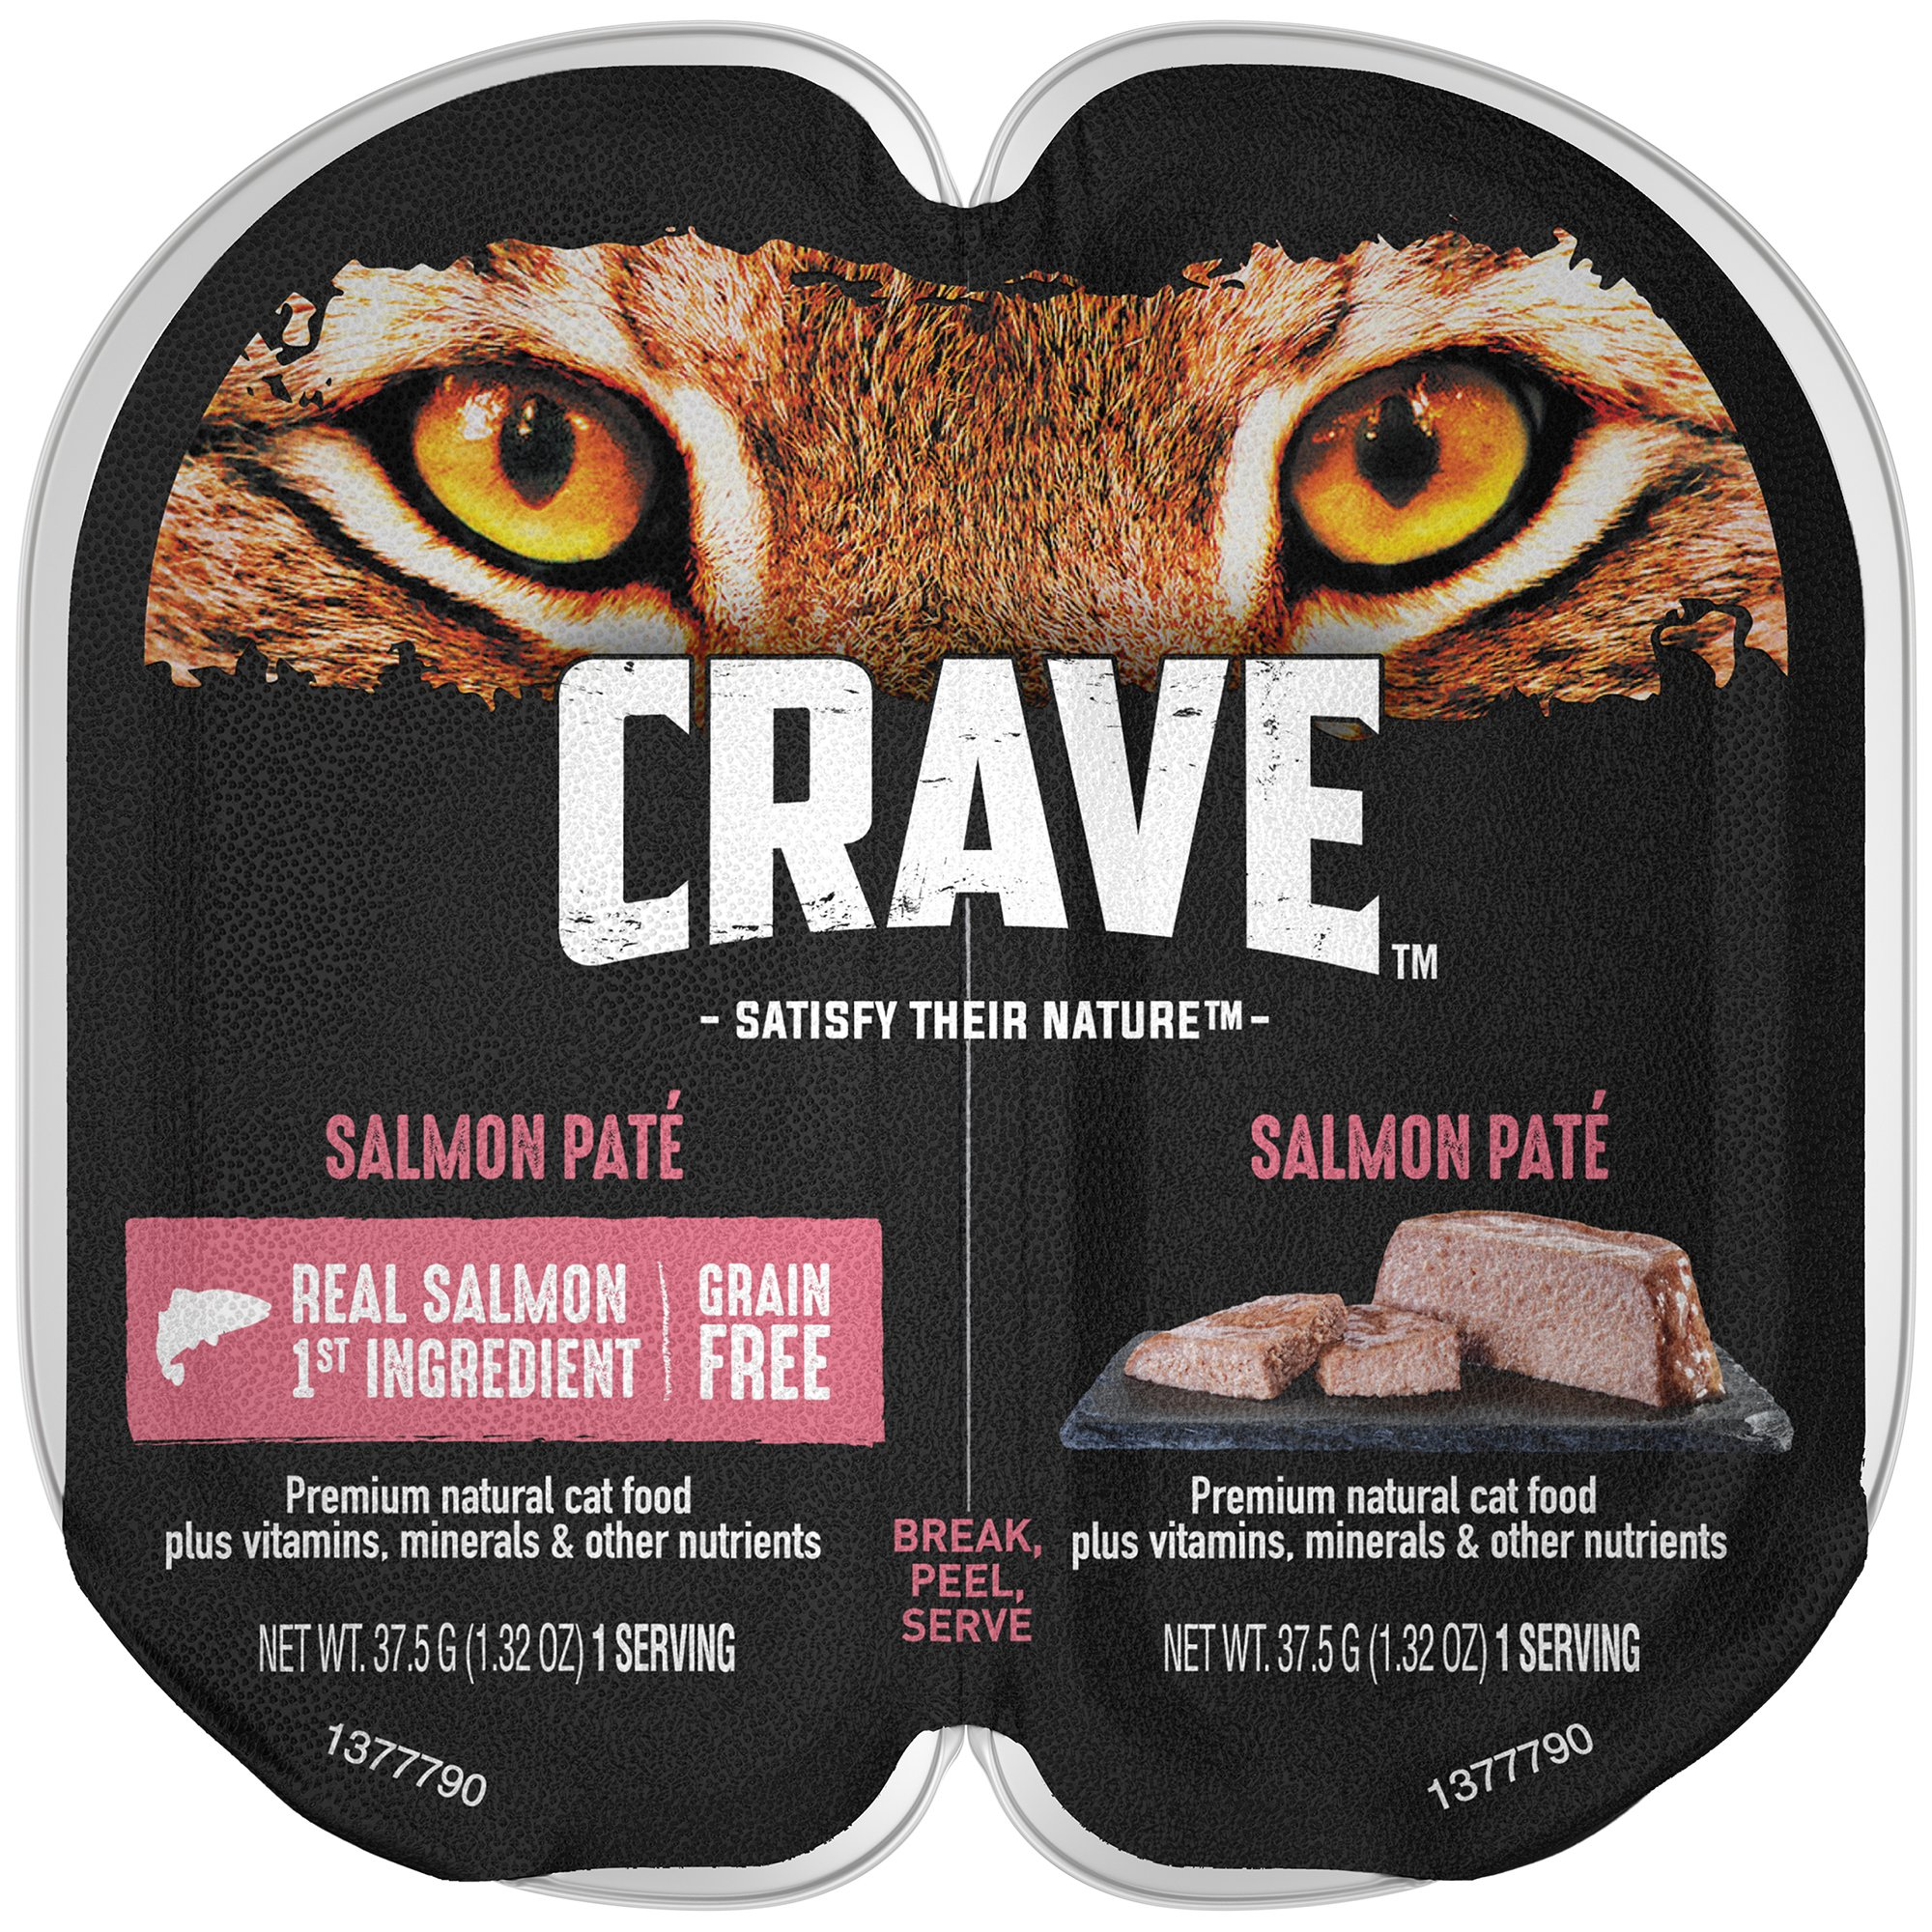 Crave Grain Free Adult High Protein Wet Cat Food Paté Salmon, (24) 2.6 Oz. Twin-Pack Trays by CRAVE